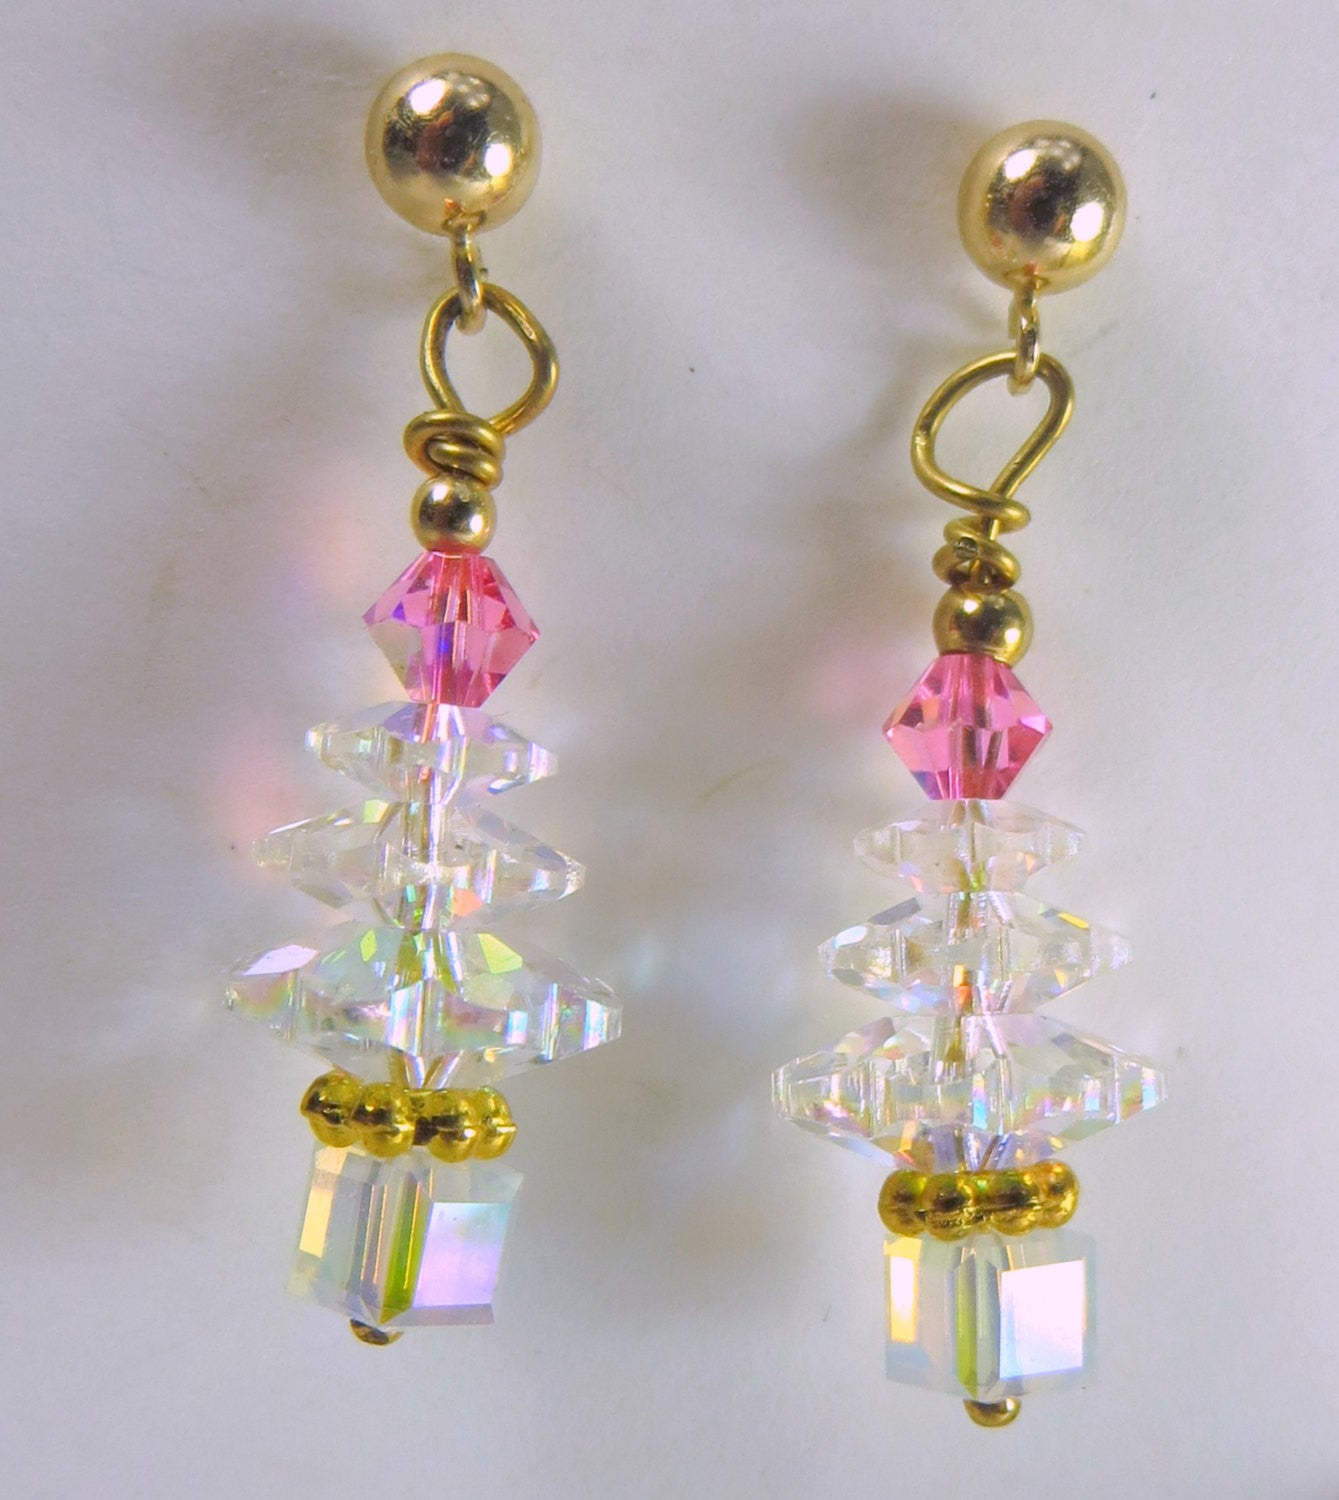 Christmas Tree Earrings in Swarovski Crystal AB and Pink on 14k gold fill posts - Odyssey Creations